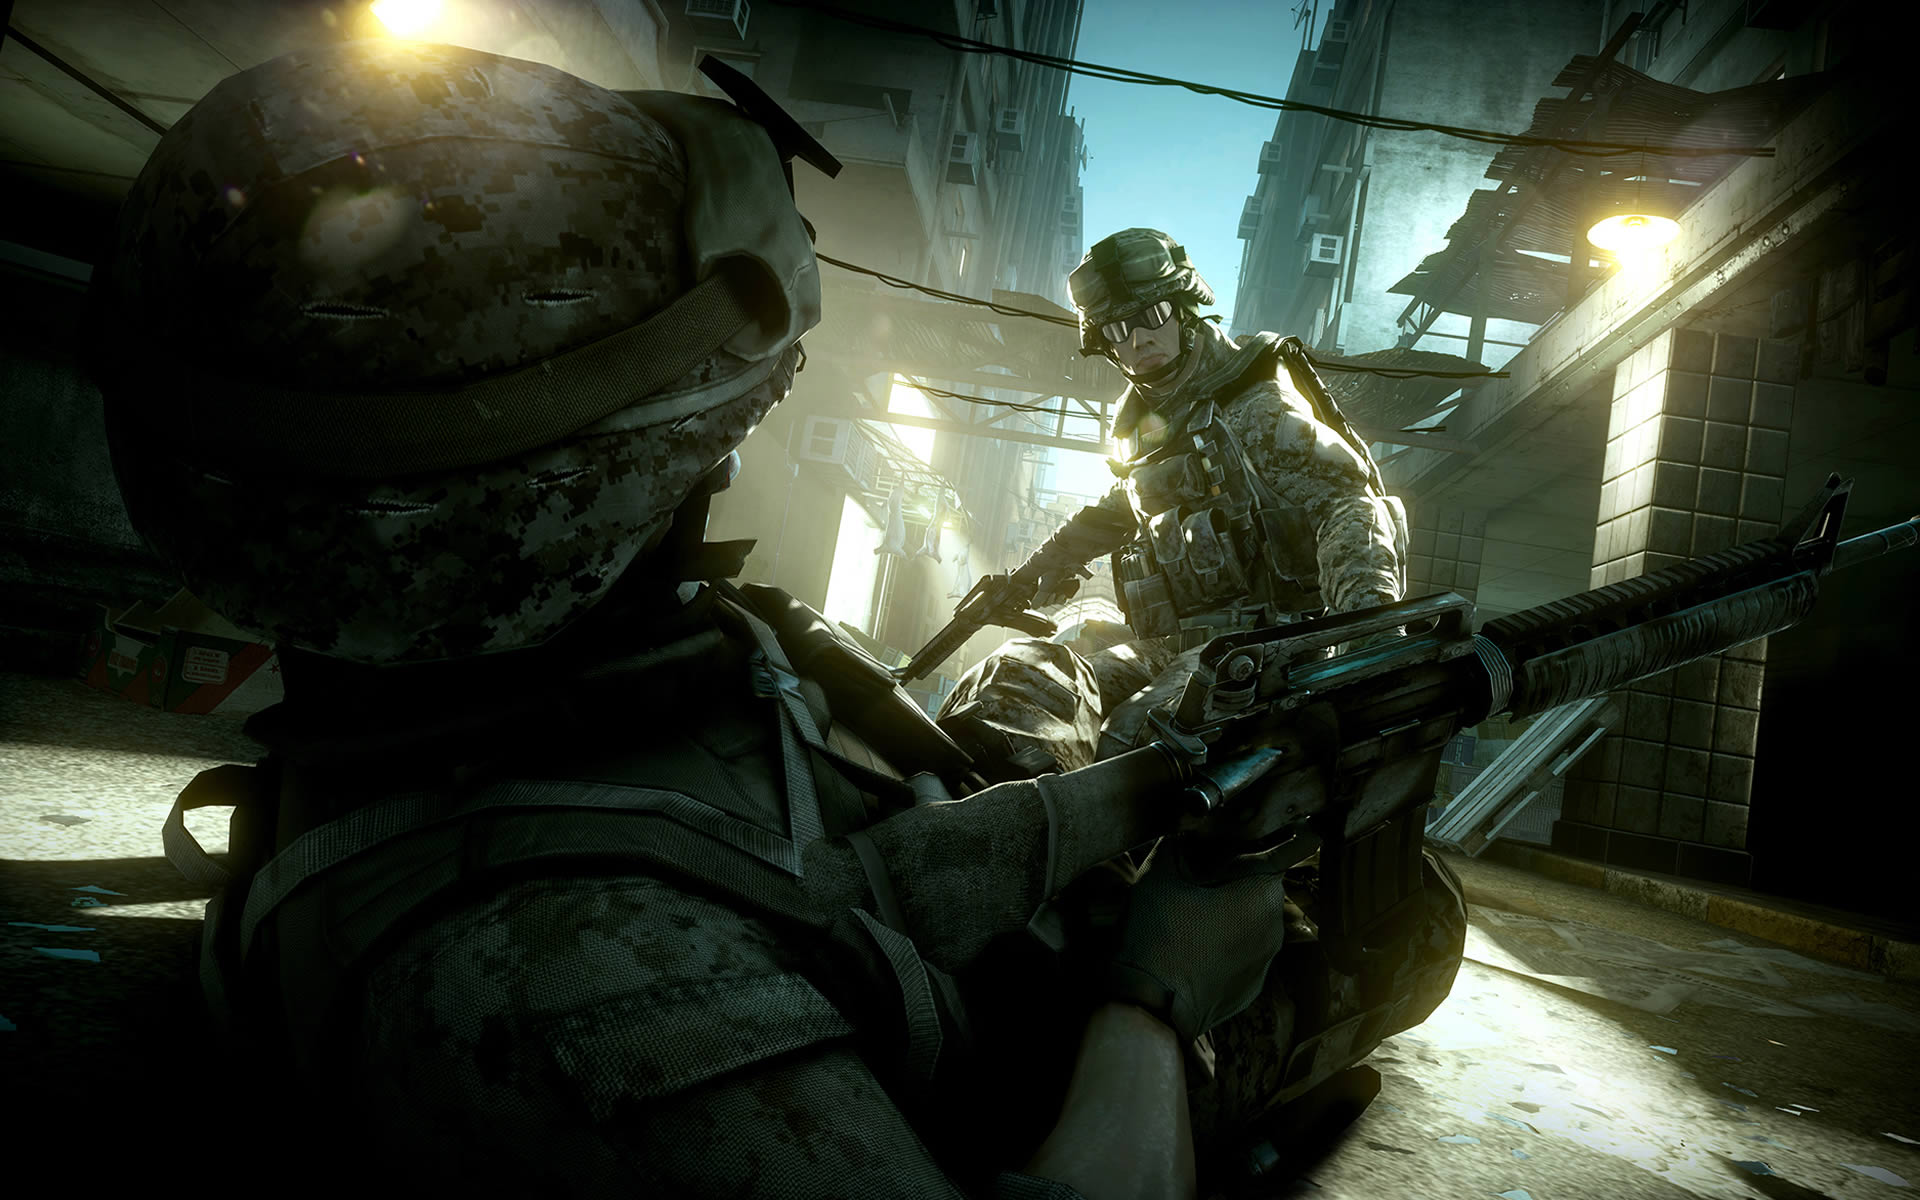 Battlefield 3 pc version coming with ultra settings 56k lolno battlefield 3 pc version coming with ultra settings 56k lolno voltagebd Image collections